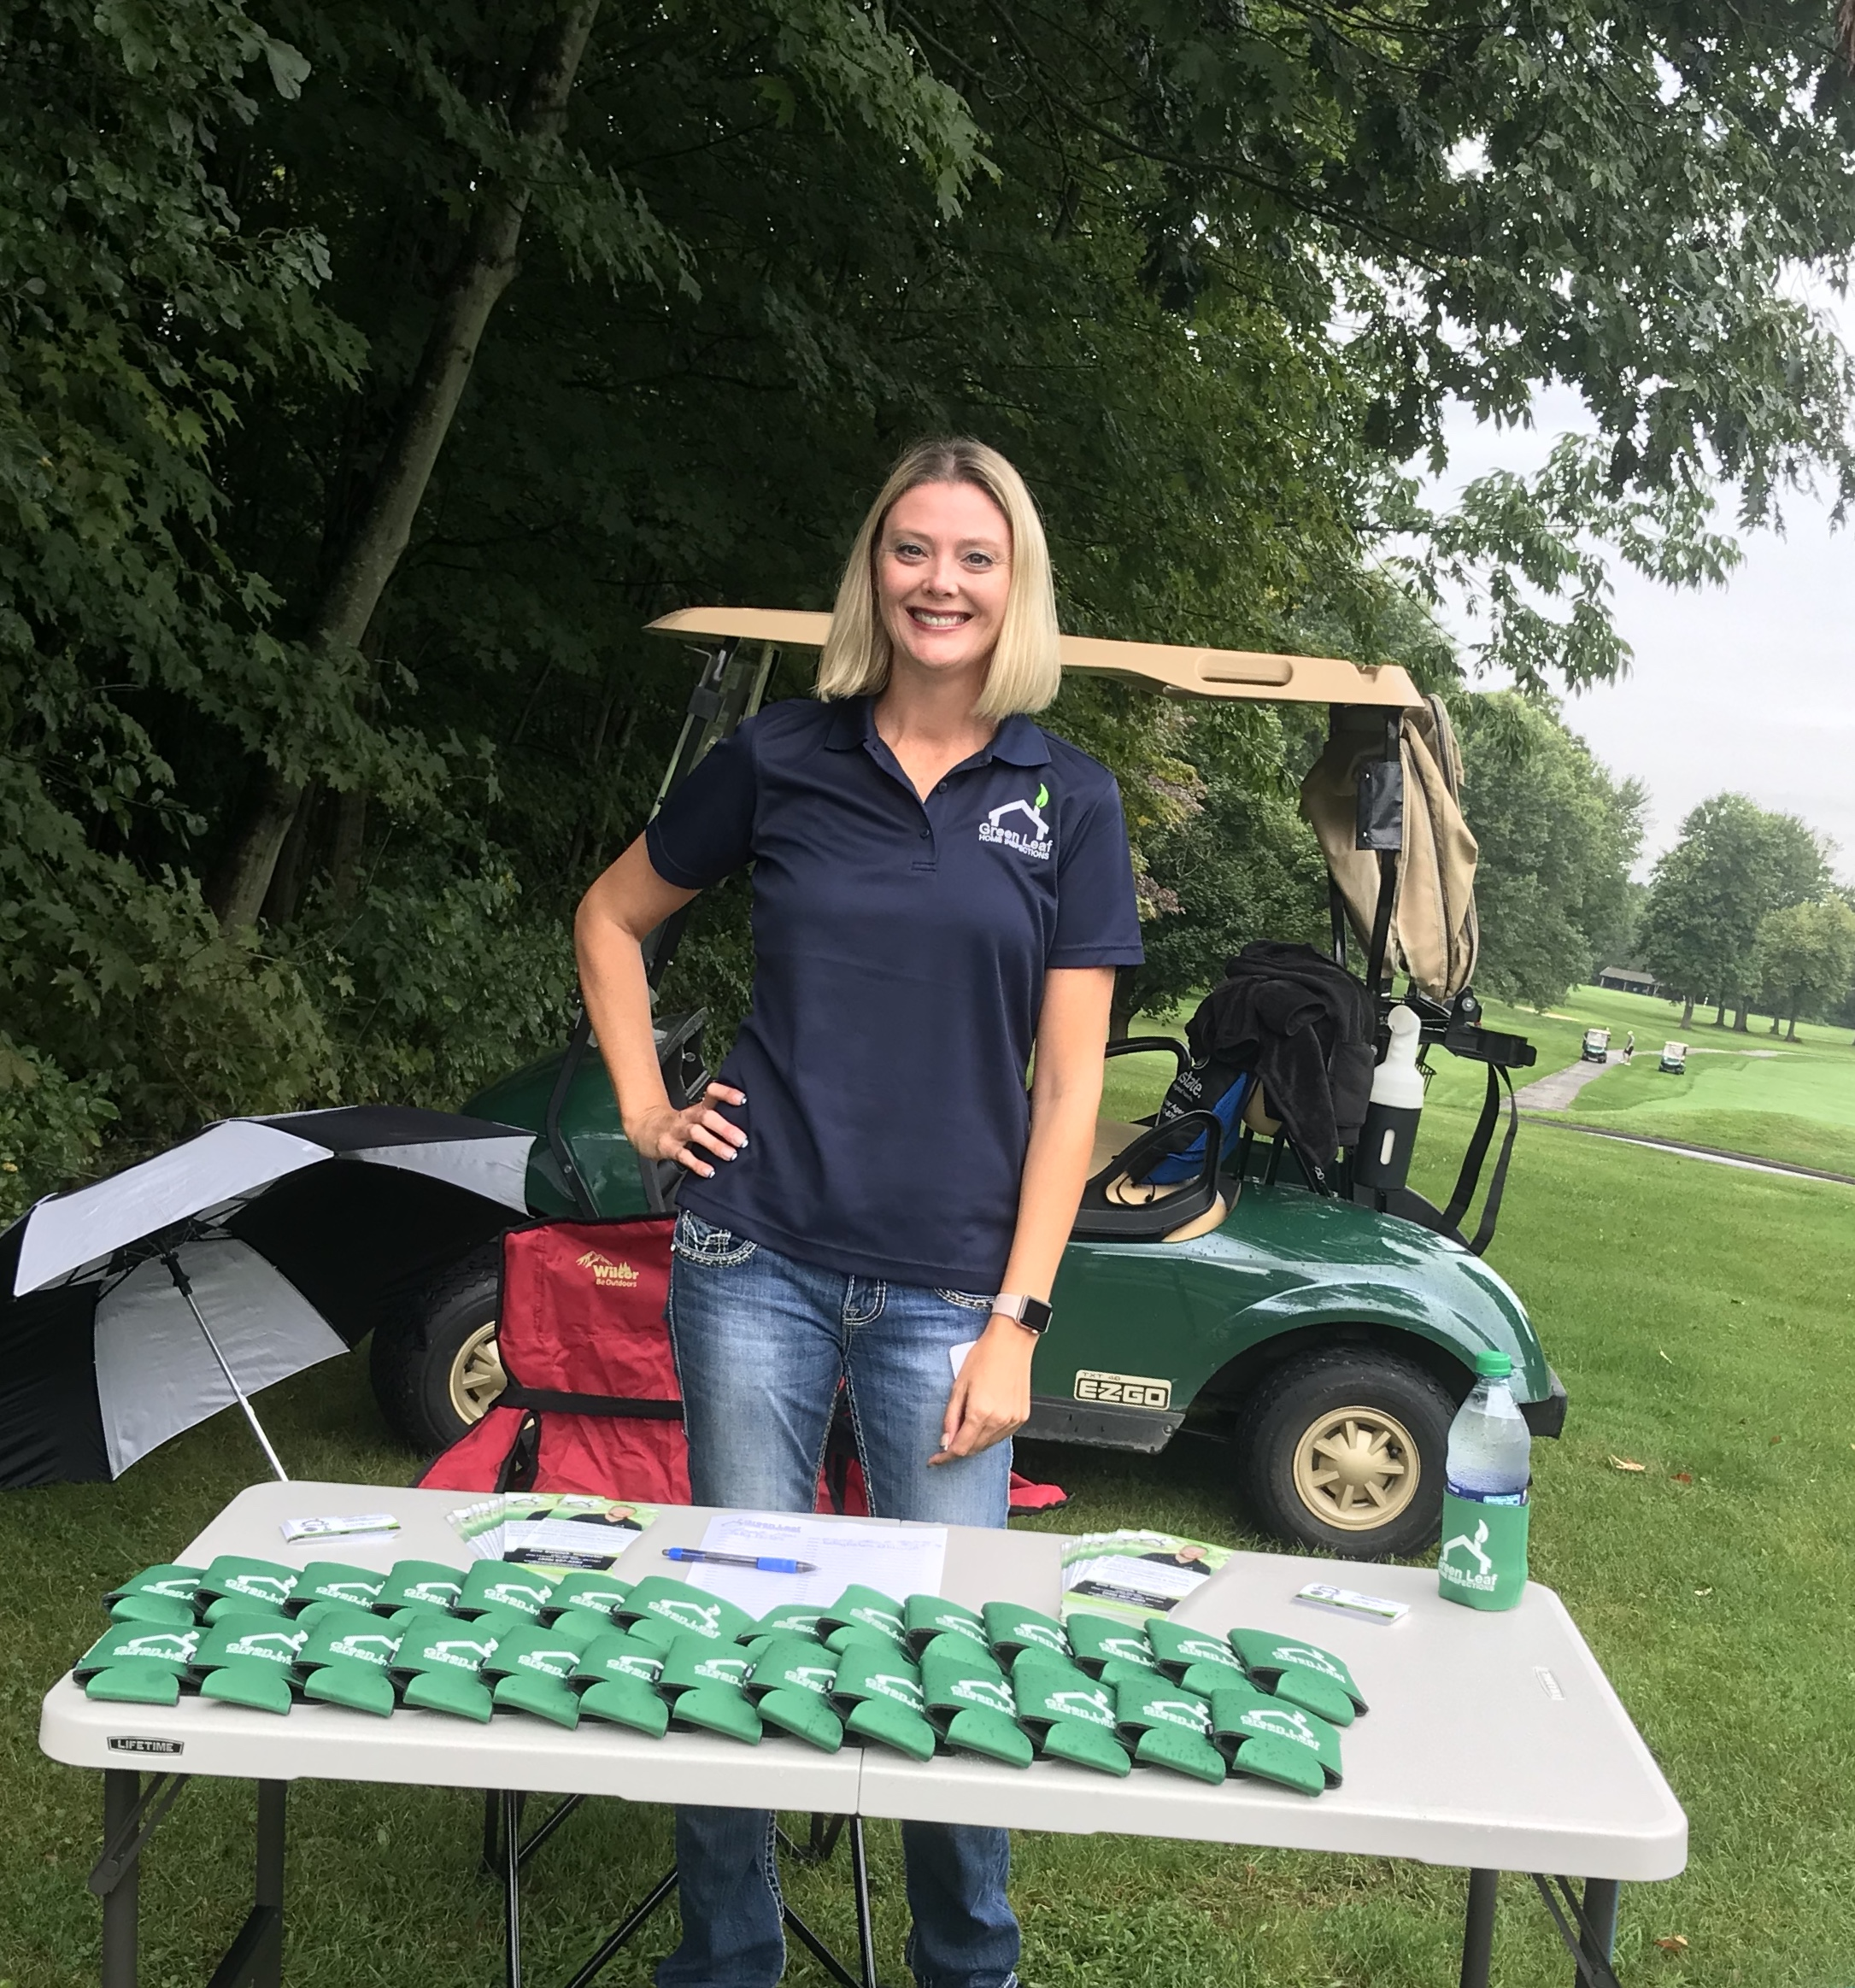 It was a fun, wet day at Fowler's Mill Golf Course for the LGAAR Annual Golf Scramble representing Green Leaf Home Inspections. Real Estate industry professionals were able to leave hole #2 with a custom GLHI koozie and information for future home inspections.